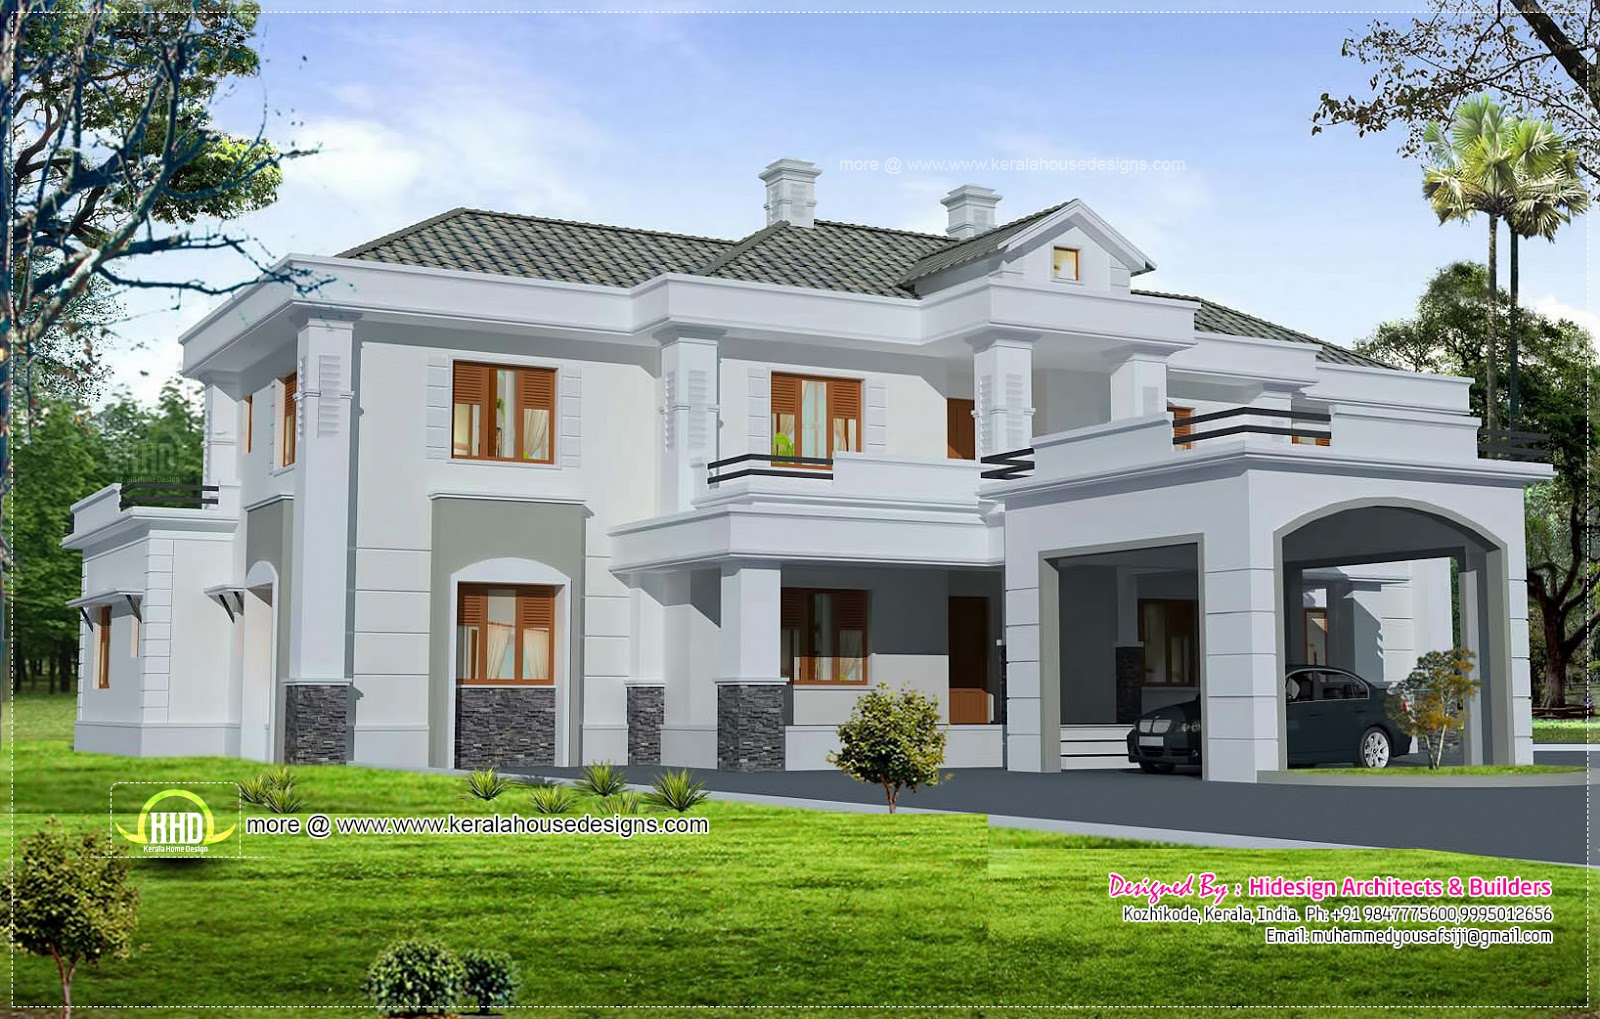 Luxury colonial style home design with court yard kerala Colonial style homes floor plans